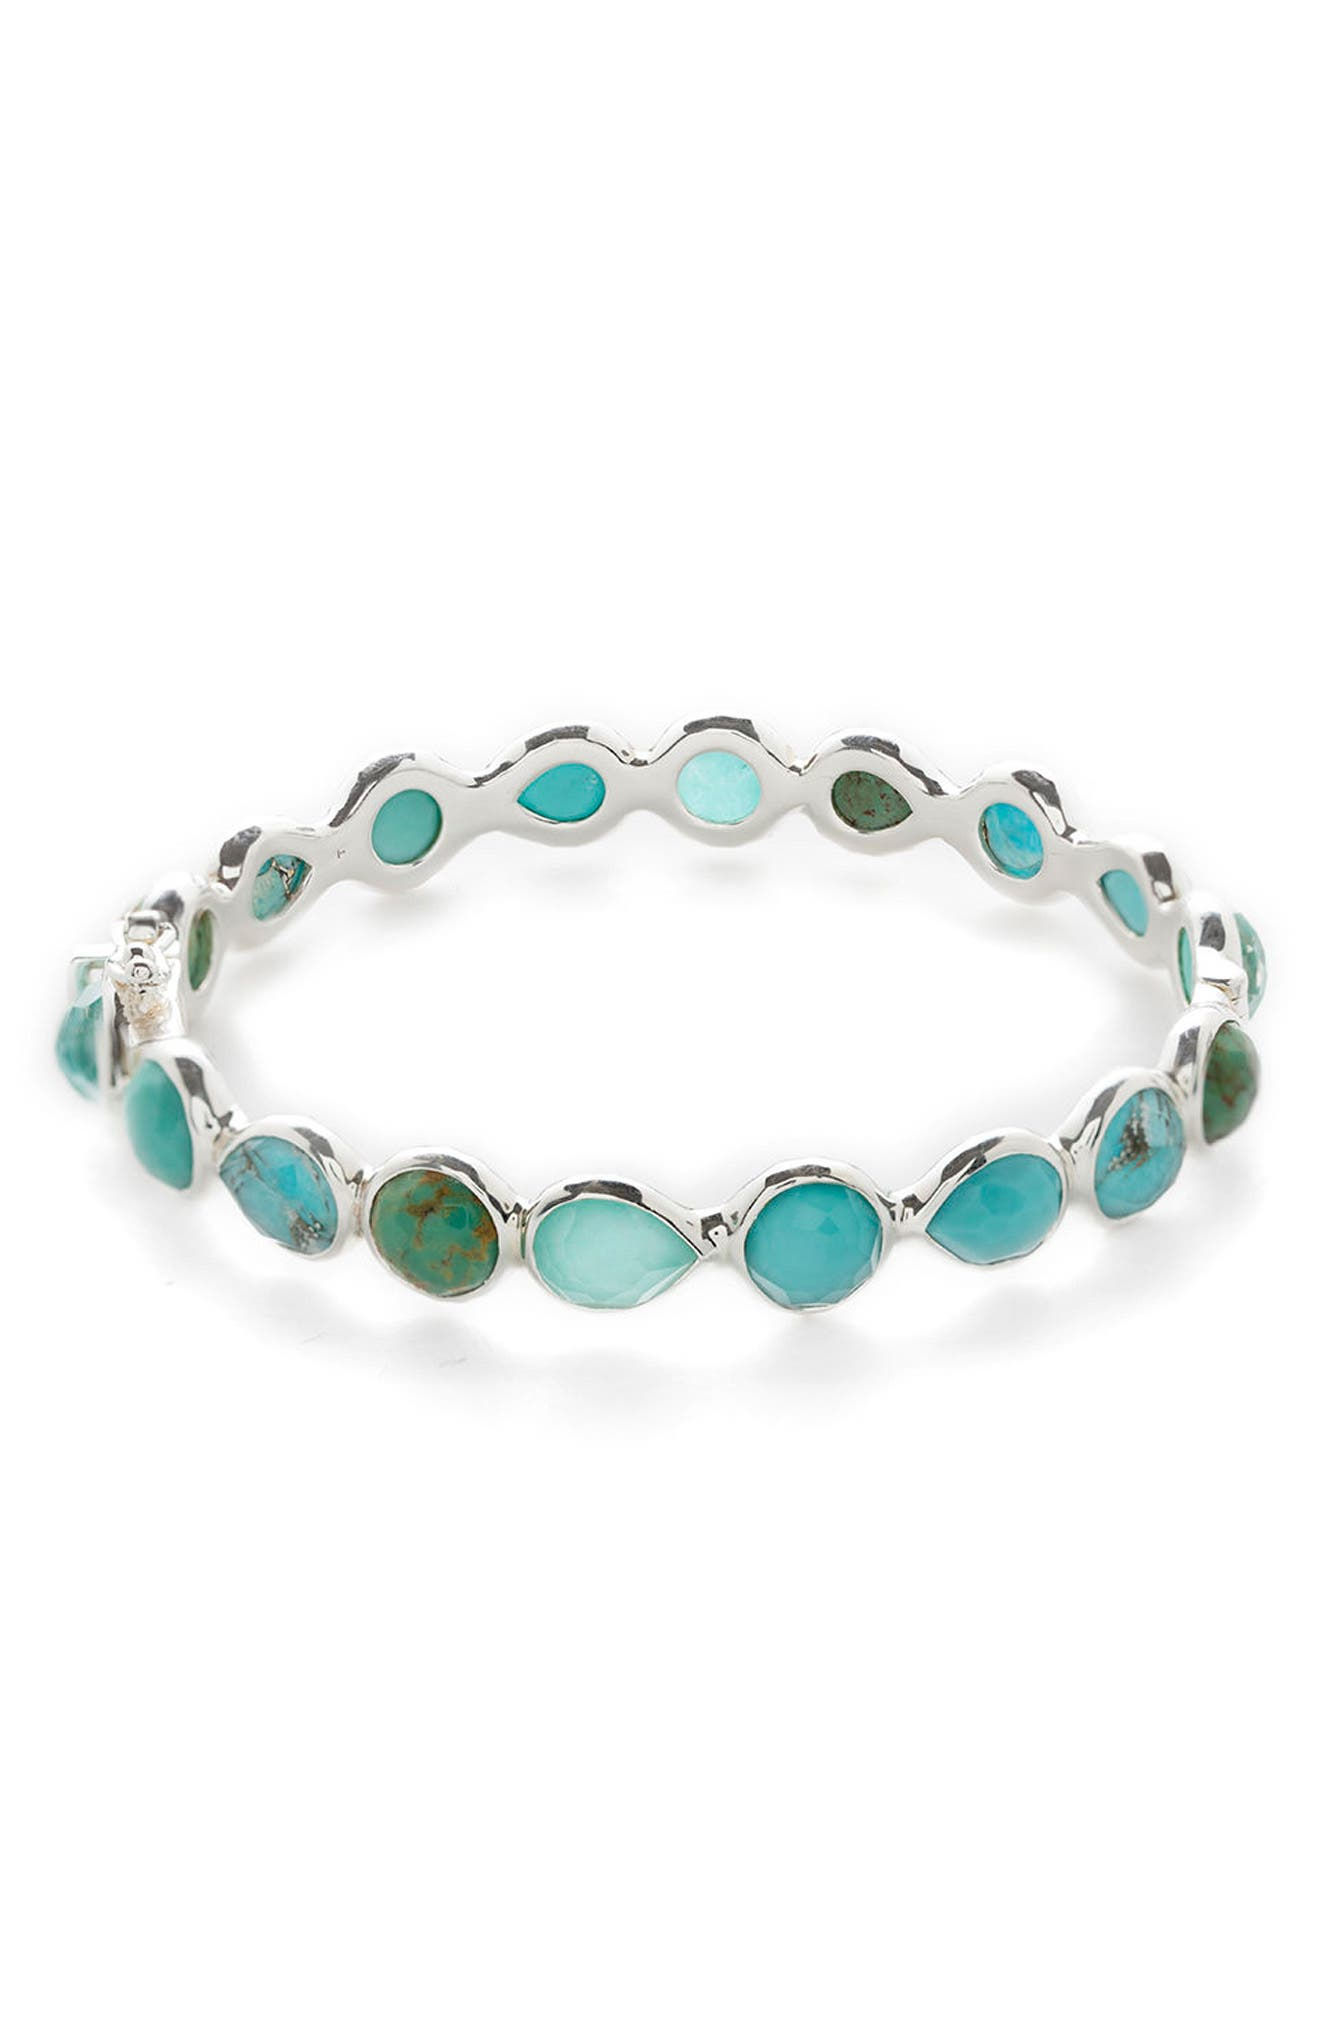 Rock Candy Bangle,                             Main thumbnail 1, color,                             Turquoise